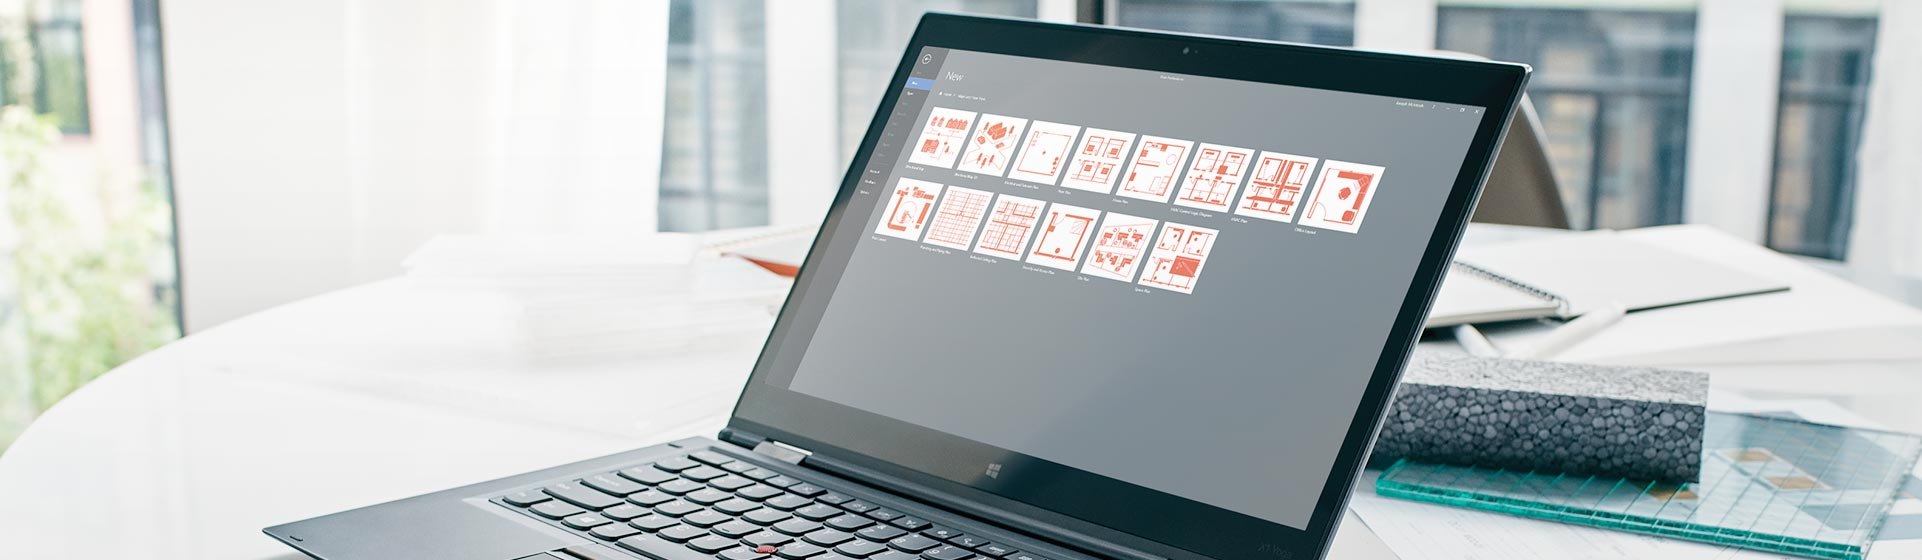 A Microsoft Surface tablet displaying floor plan templates in Visio